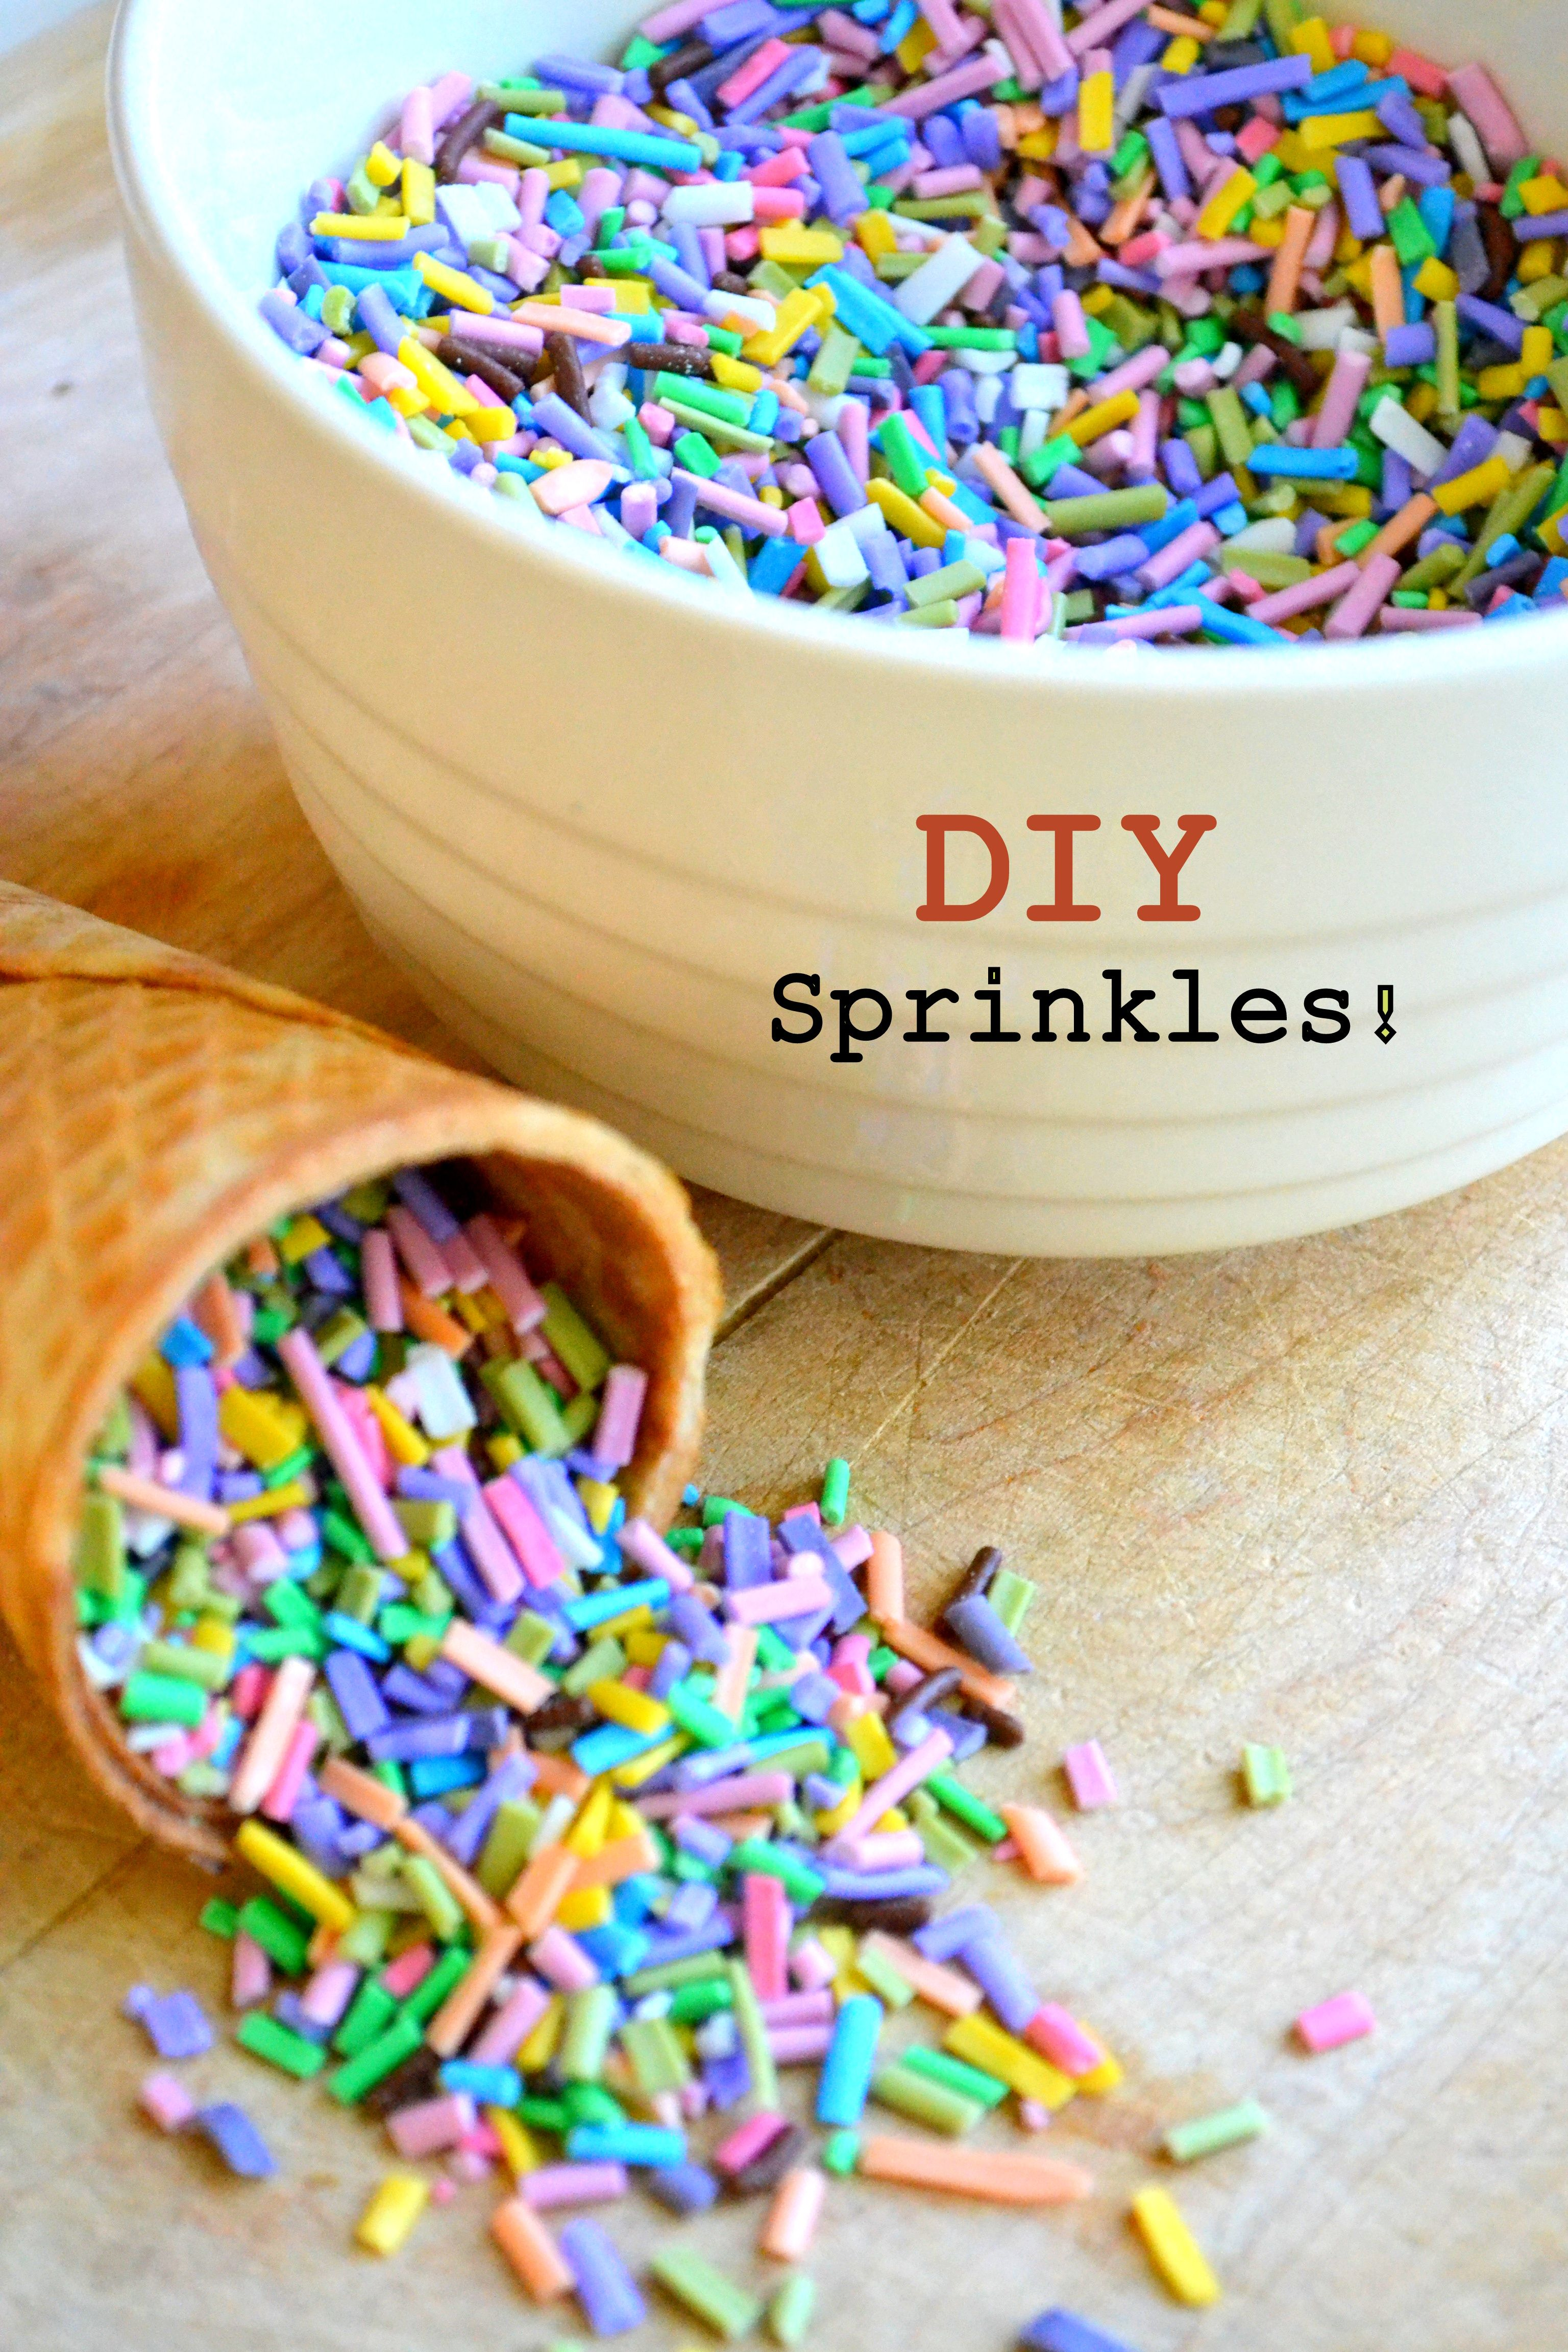 How To Make Your Own Cake Sprinkles